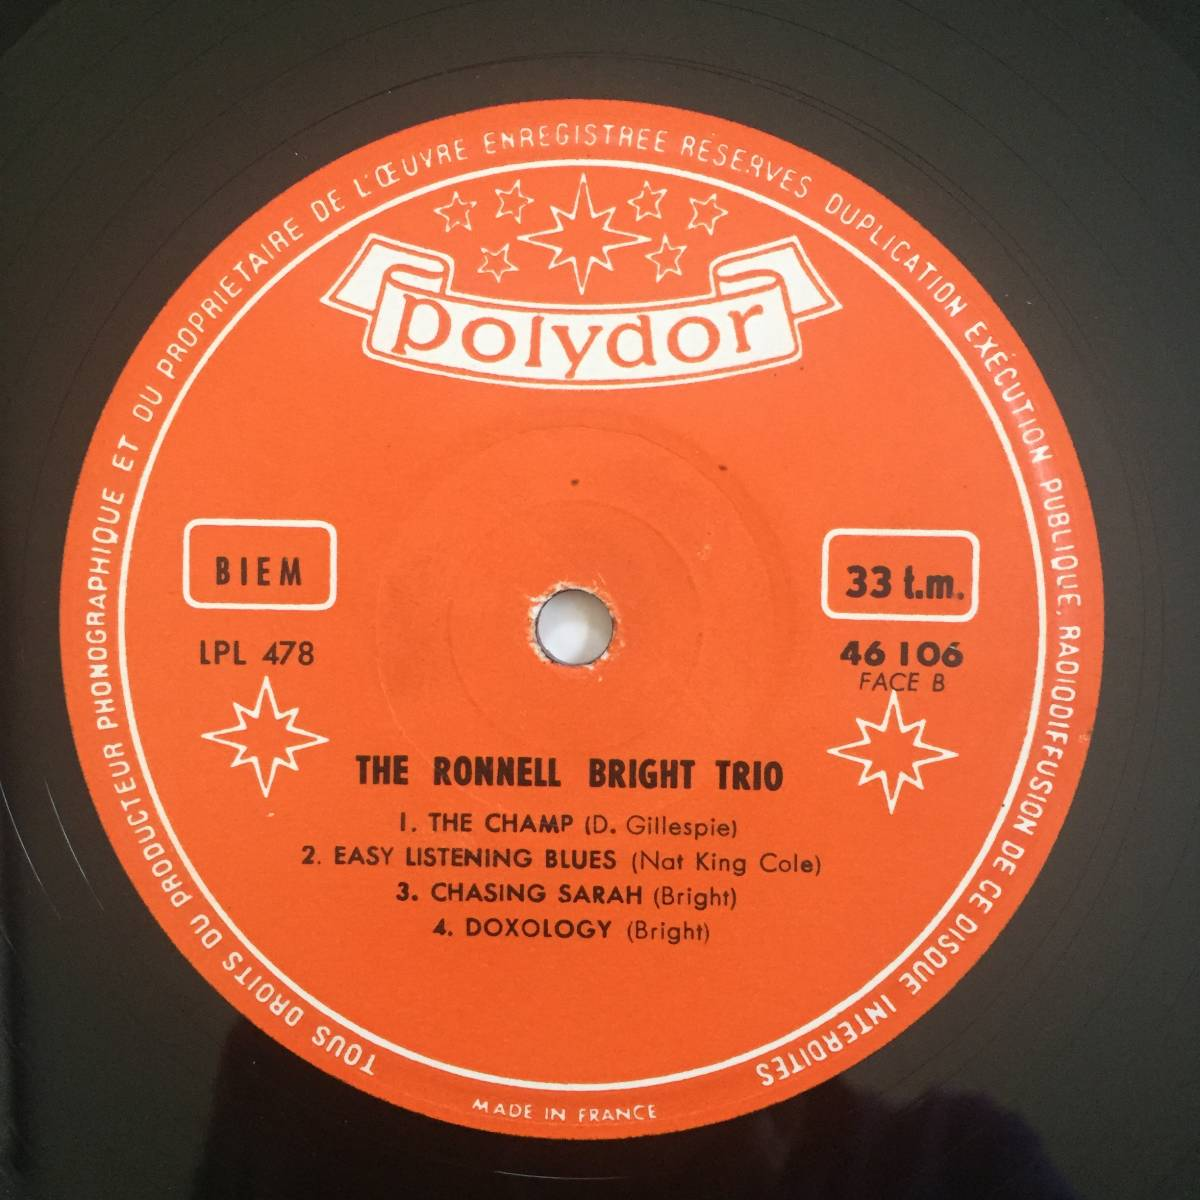 【激レア/France Polydor Original】The Ronnell Bright Trio(Polydor 46 106)_画像4